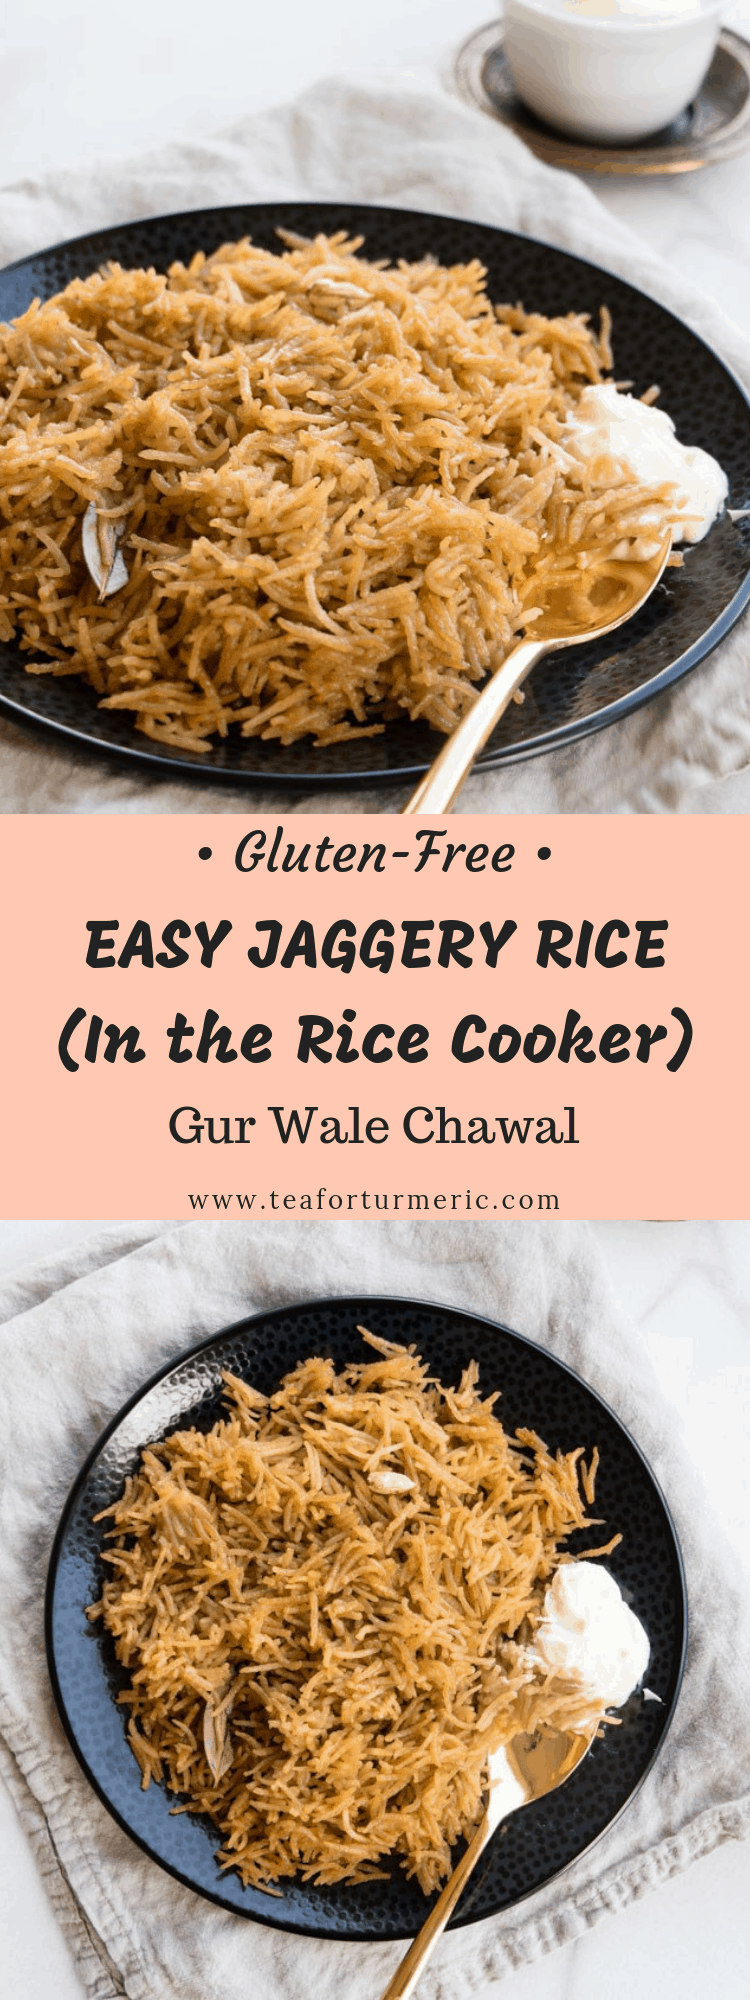 Jaggery Rice is a traditional South Asian dessert recipe that sweetens rice with an unrefined sugar called jaggery (or gur). This rice cooker recipe is gluten-free, easy to make, and yields perfect results! #ricecookerrecipe #jaggery #jaggeryrice